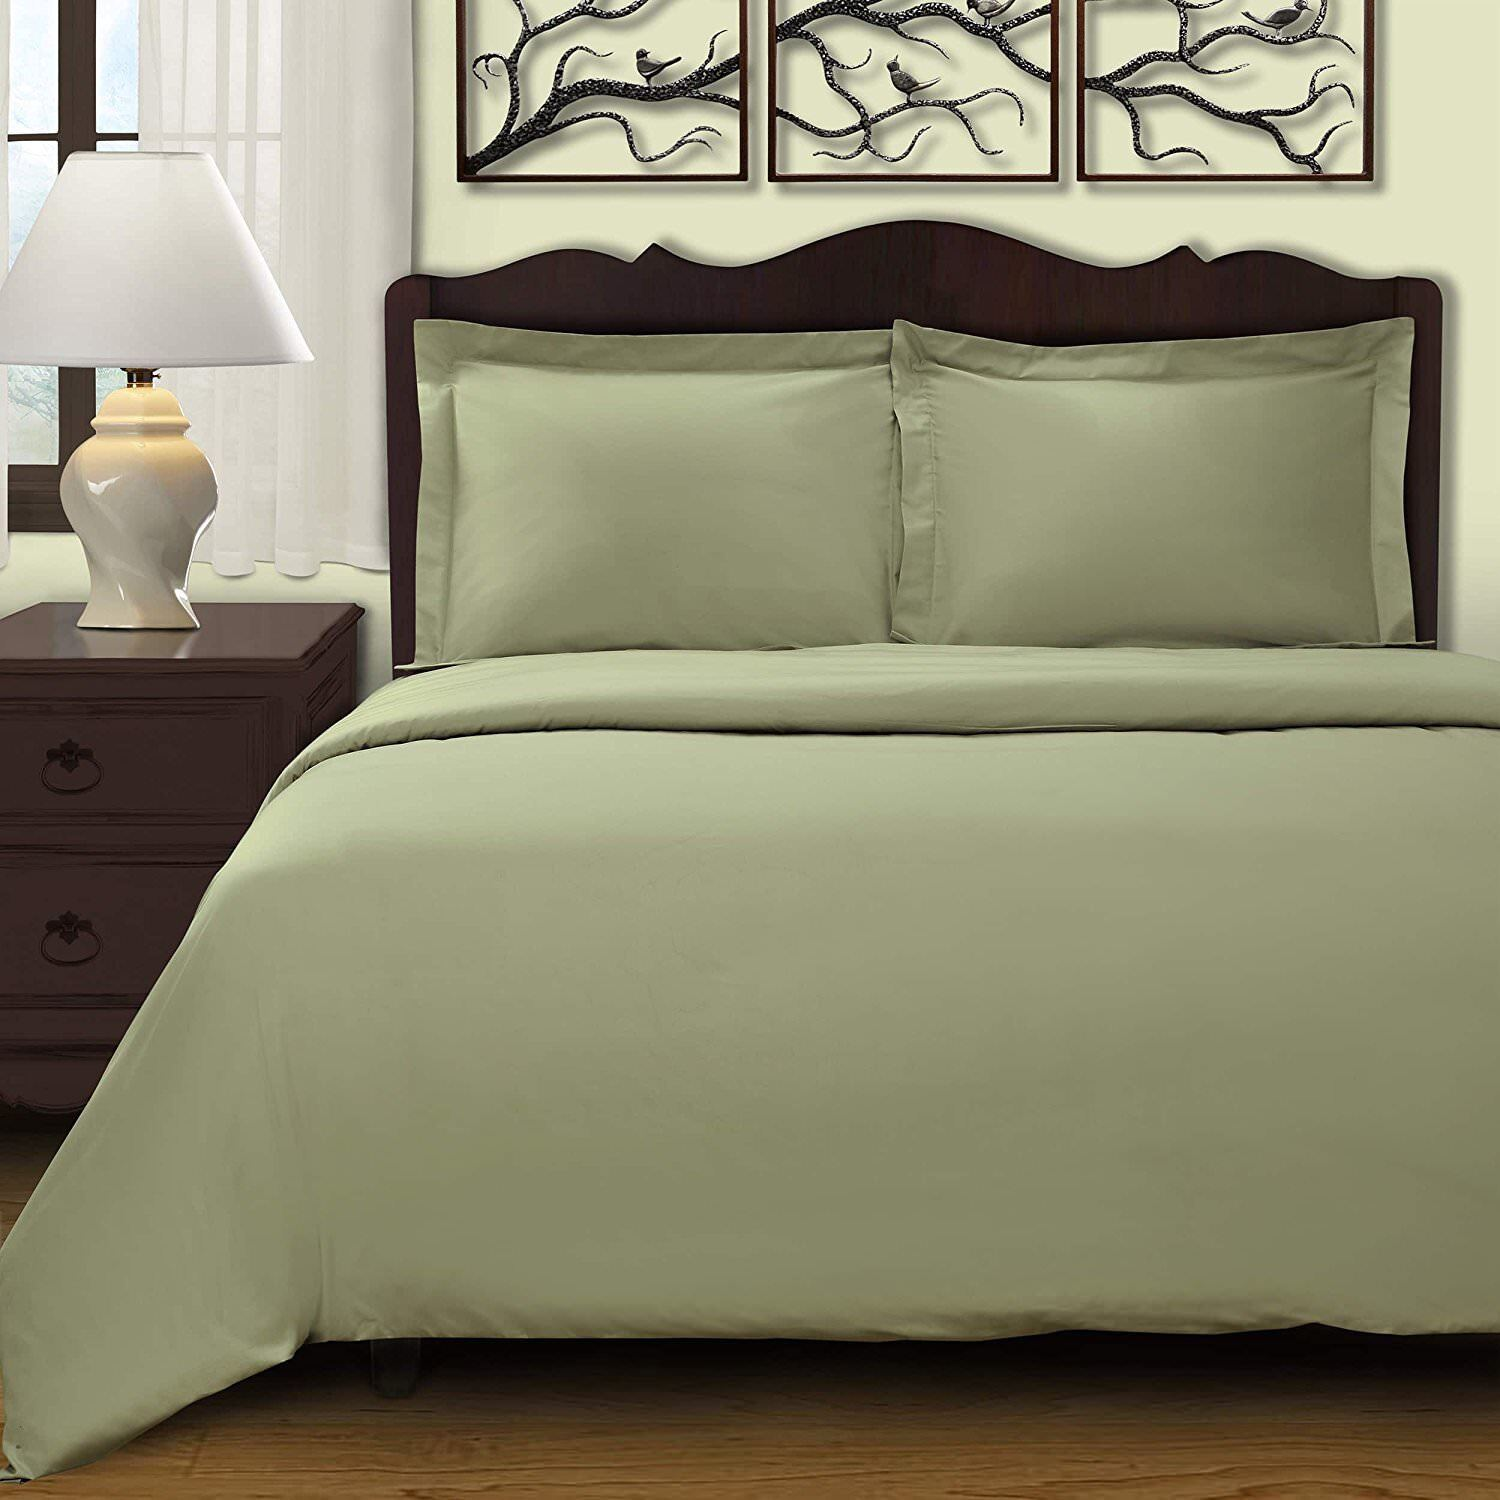 Superior 300 Thread Count Combed Cotton Sateen Duvet Cover Set Sage 3 Piece Cali